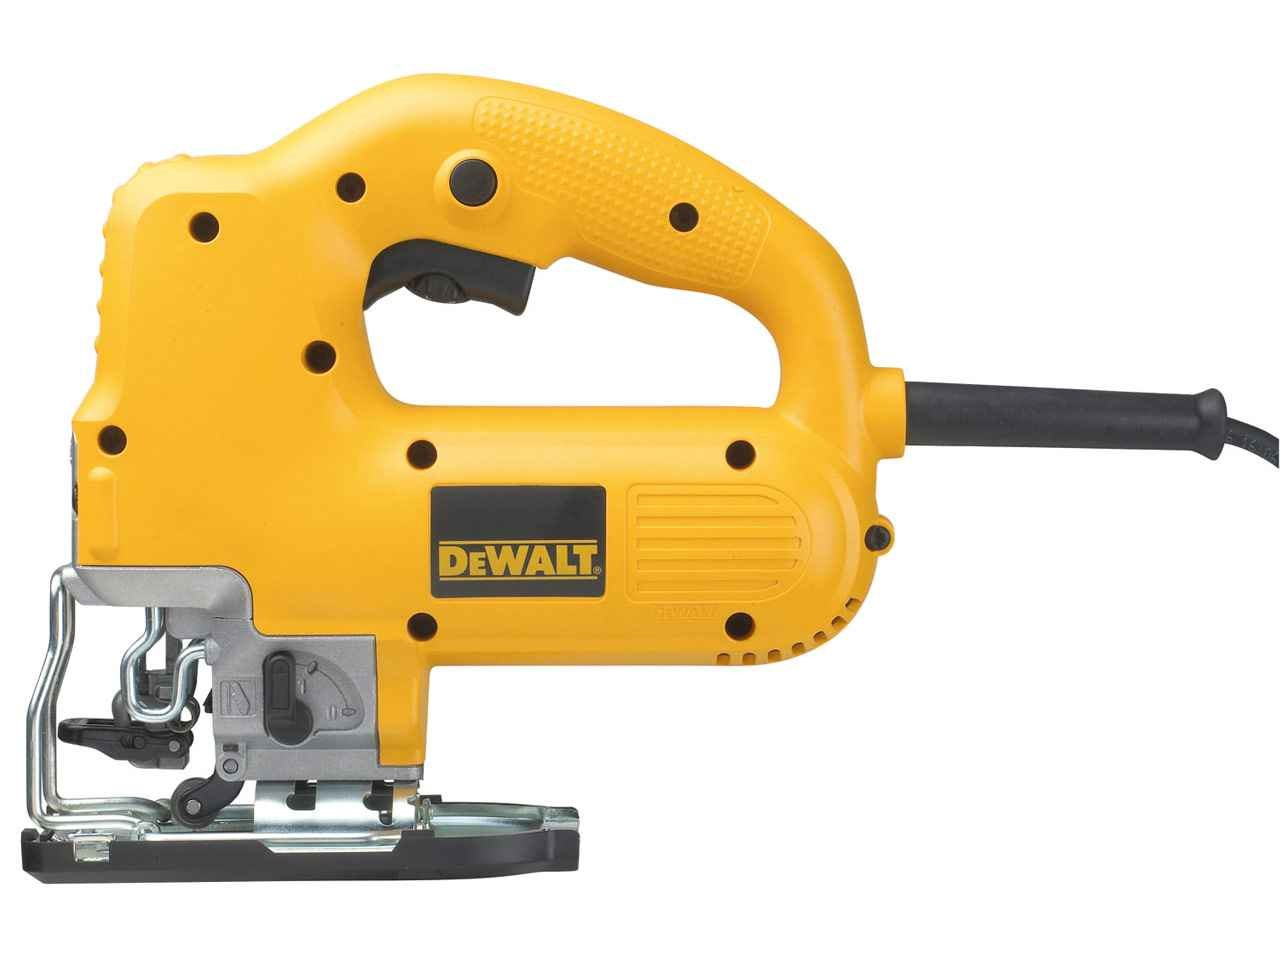 Dewalt dw341k 240v compact top handle jigsaw 550w greentooth Choice Image